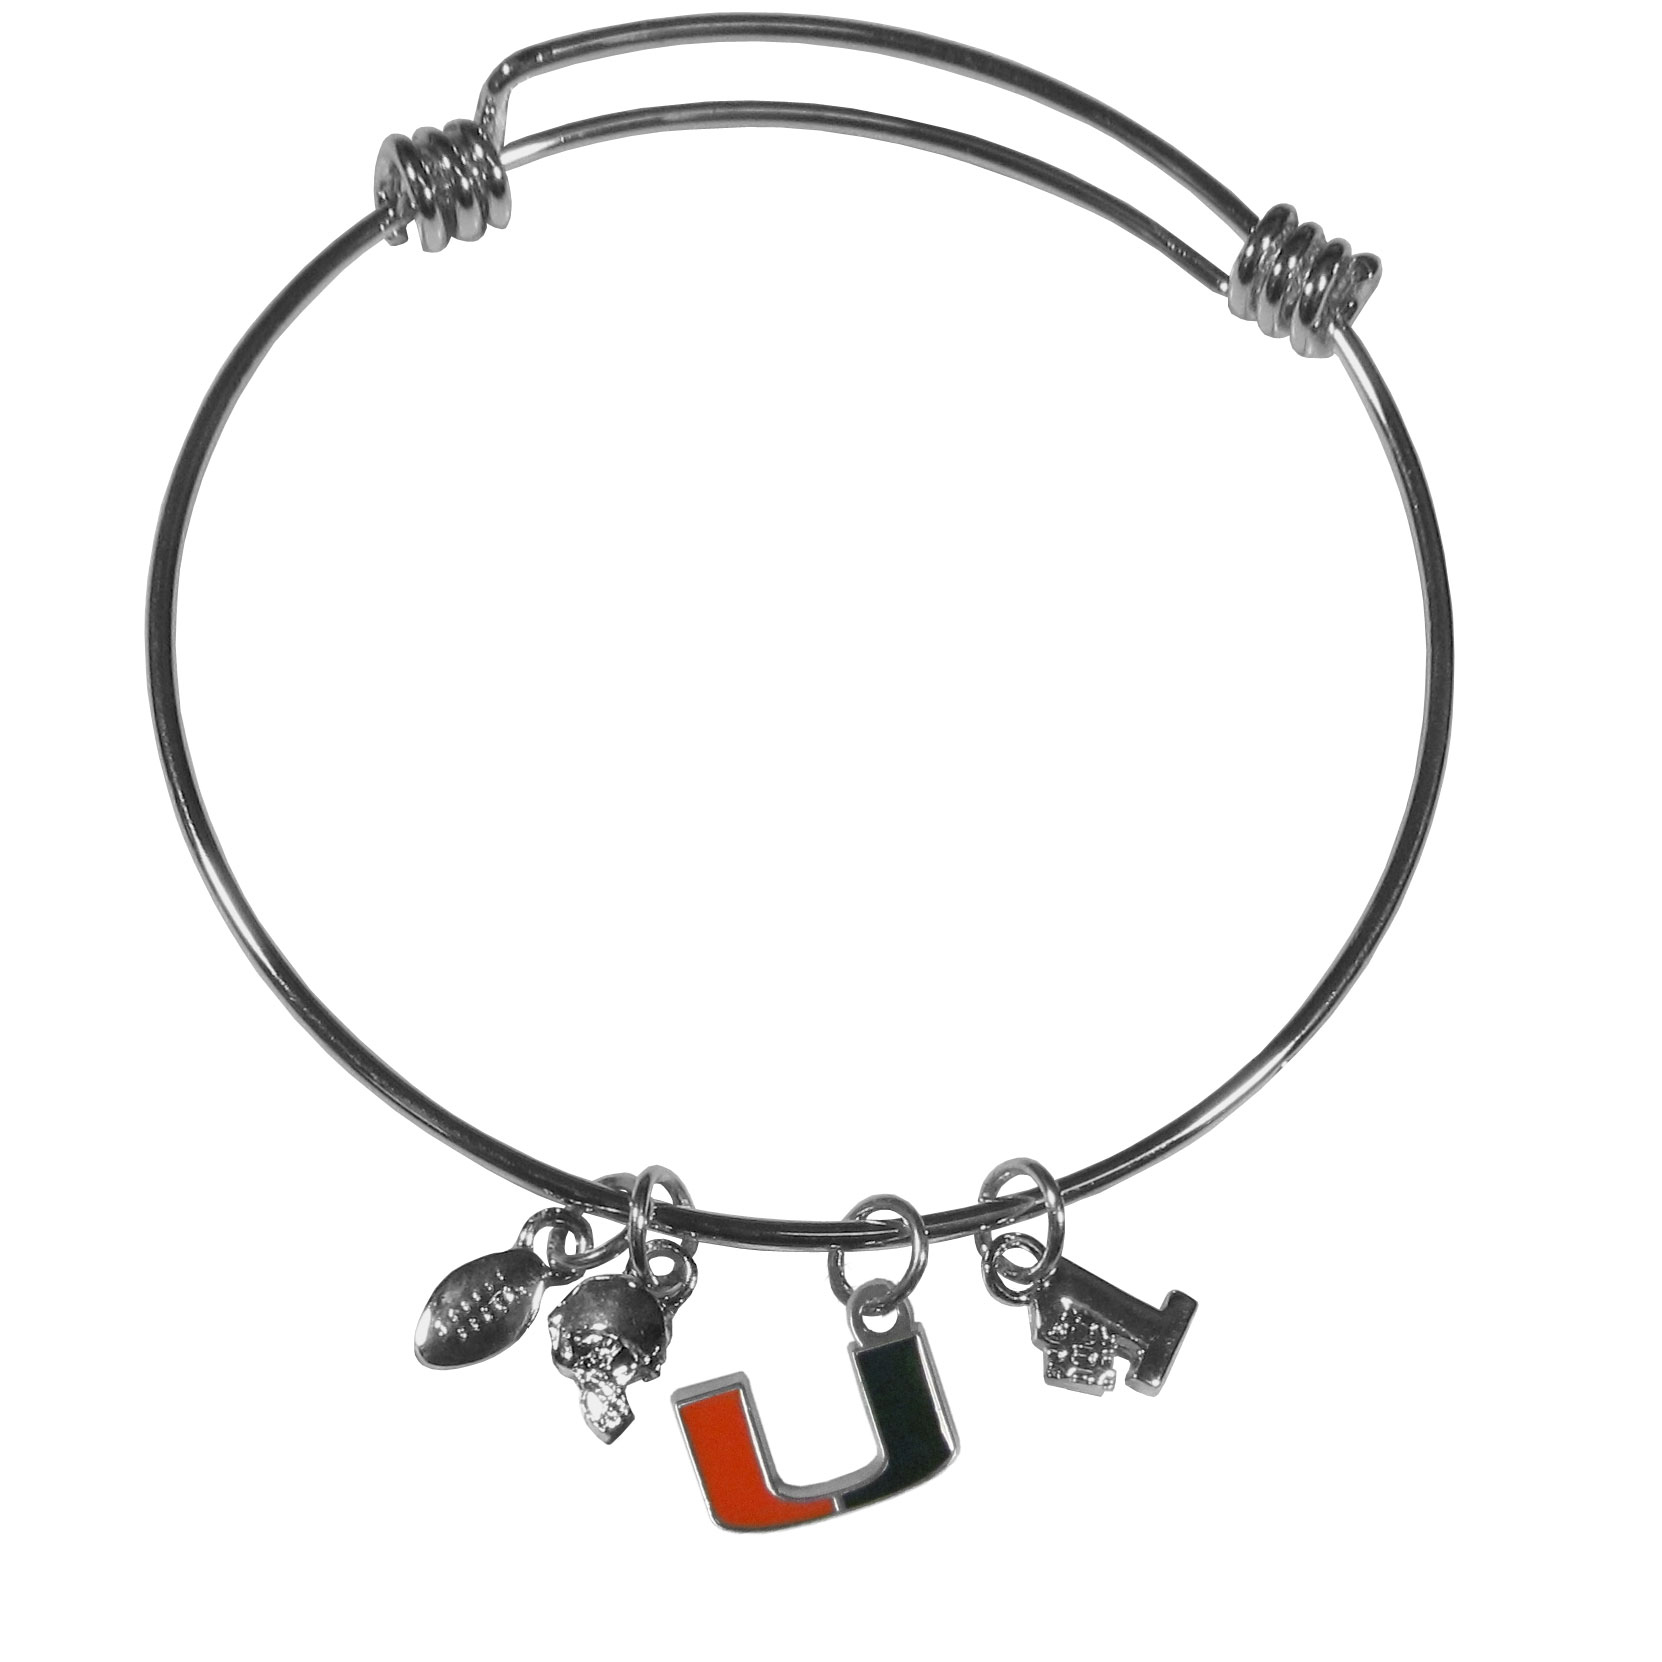 Miami Hurricanes Charm Bangle Bracelet - Adjustable wire bracelets are all the rage and this Miami Hurricanes bracelet matches the popular trend with your beloved team. The bracelet features 4 charms in total, each feature exceptional detail and the team charm has enameled team colors.